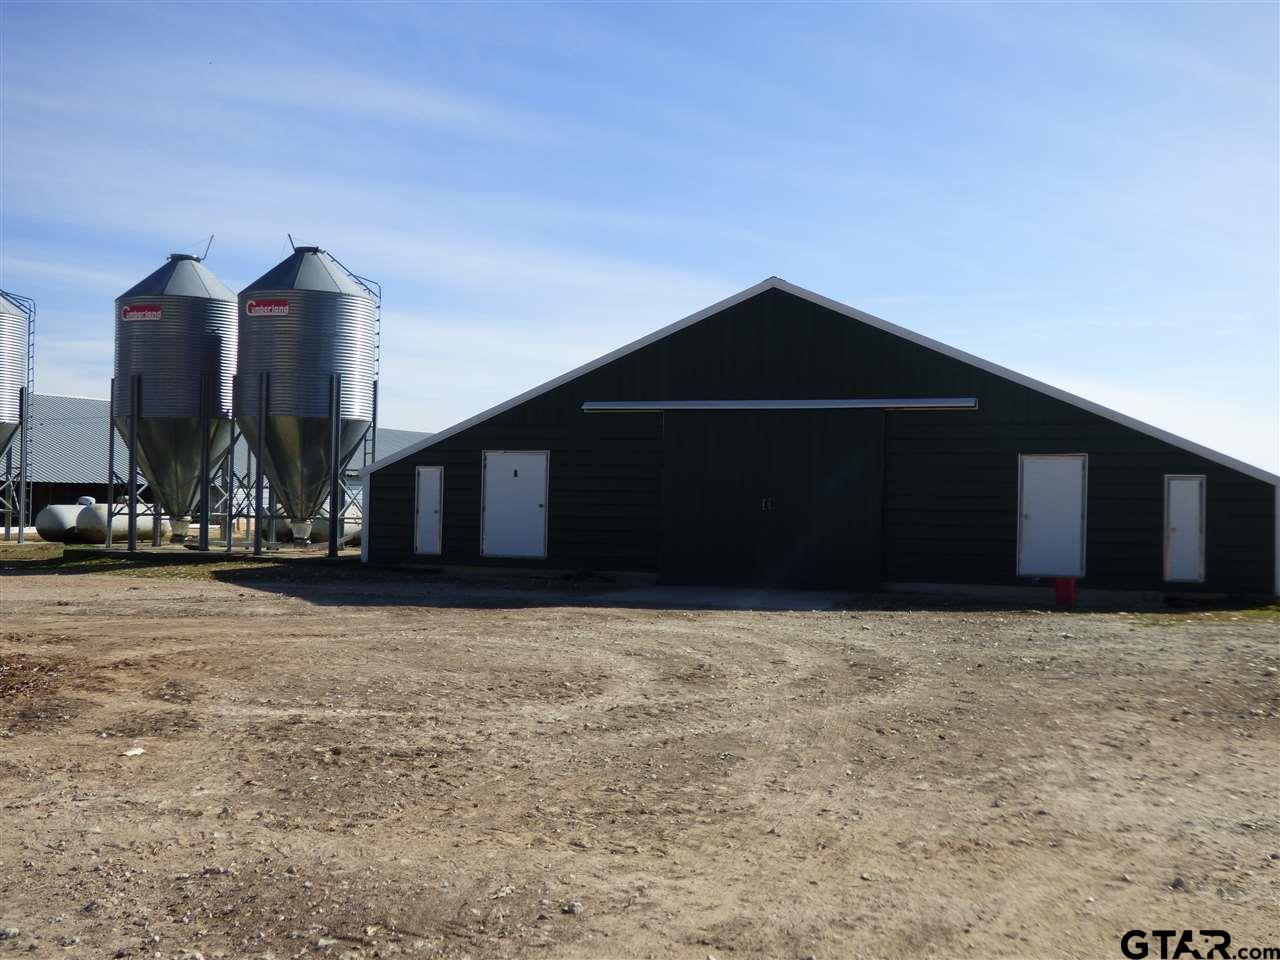 INCOME PRODUCING POULTRY FARM. FARM HAS 6/500 FT POULTRY HOUSES .  THIS FARM WAS BUILT IN 2004, has 25 acres.  THE FARM FEATURES 6/ 500 FT STEEL HOUSES AS WELL AS AN INSULATED SHOP AND INCINERATOR. THIS FARM IS WELL MAINTAINED.  THERE ARE 2/ 500+ FT WELLS.  CUMBERLAND FEEDERS, PLASSON WATER, AND LB WHITE BROODERS.  BUYERS MUST BE APPROVED AS A GROWER THROUGH PILGRIMS AND BE PRE-APPROVED FOR FINANCING.